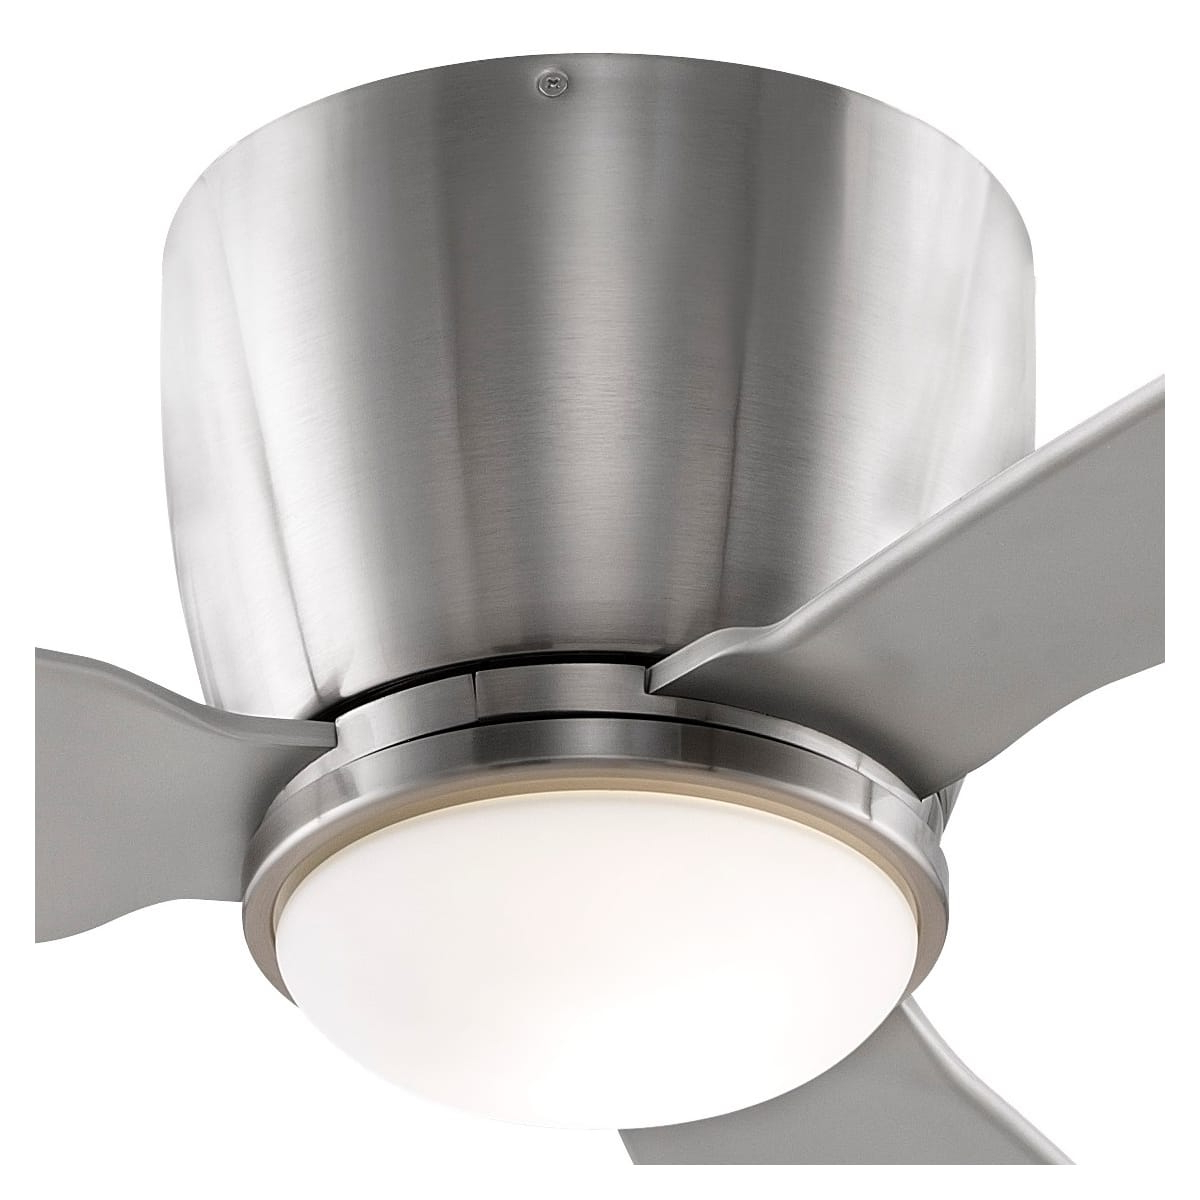 Fanimation Embrace 44 For Well Known Embrace 3 Blade Ceiling Fans (View 11 of 20)